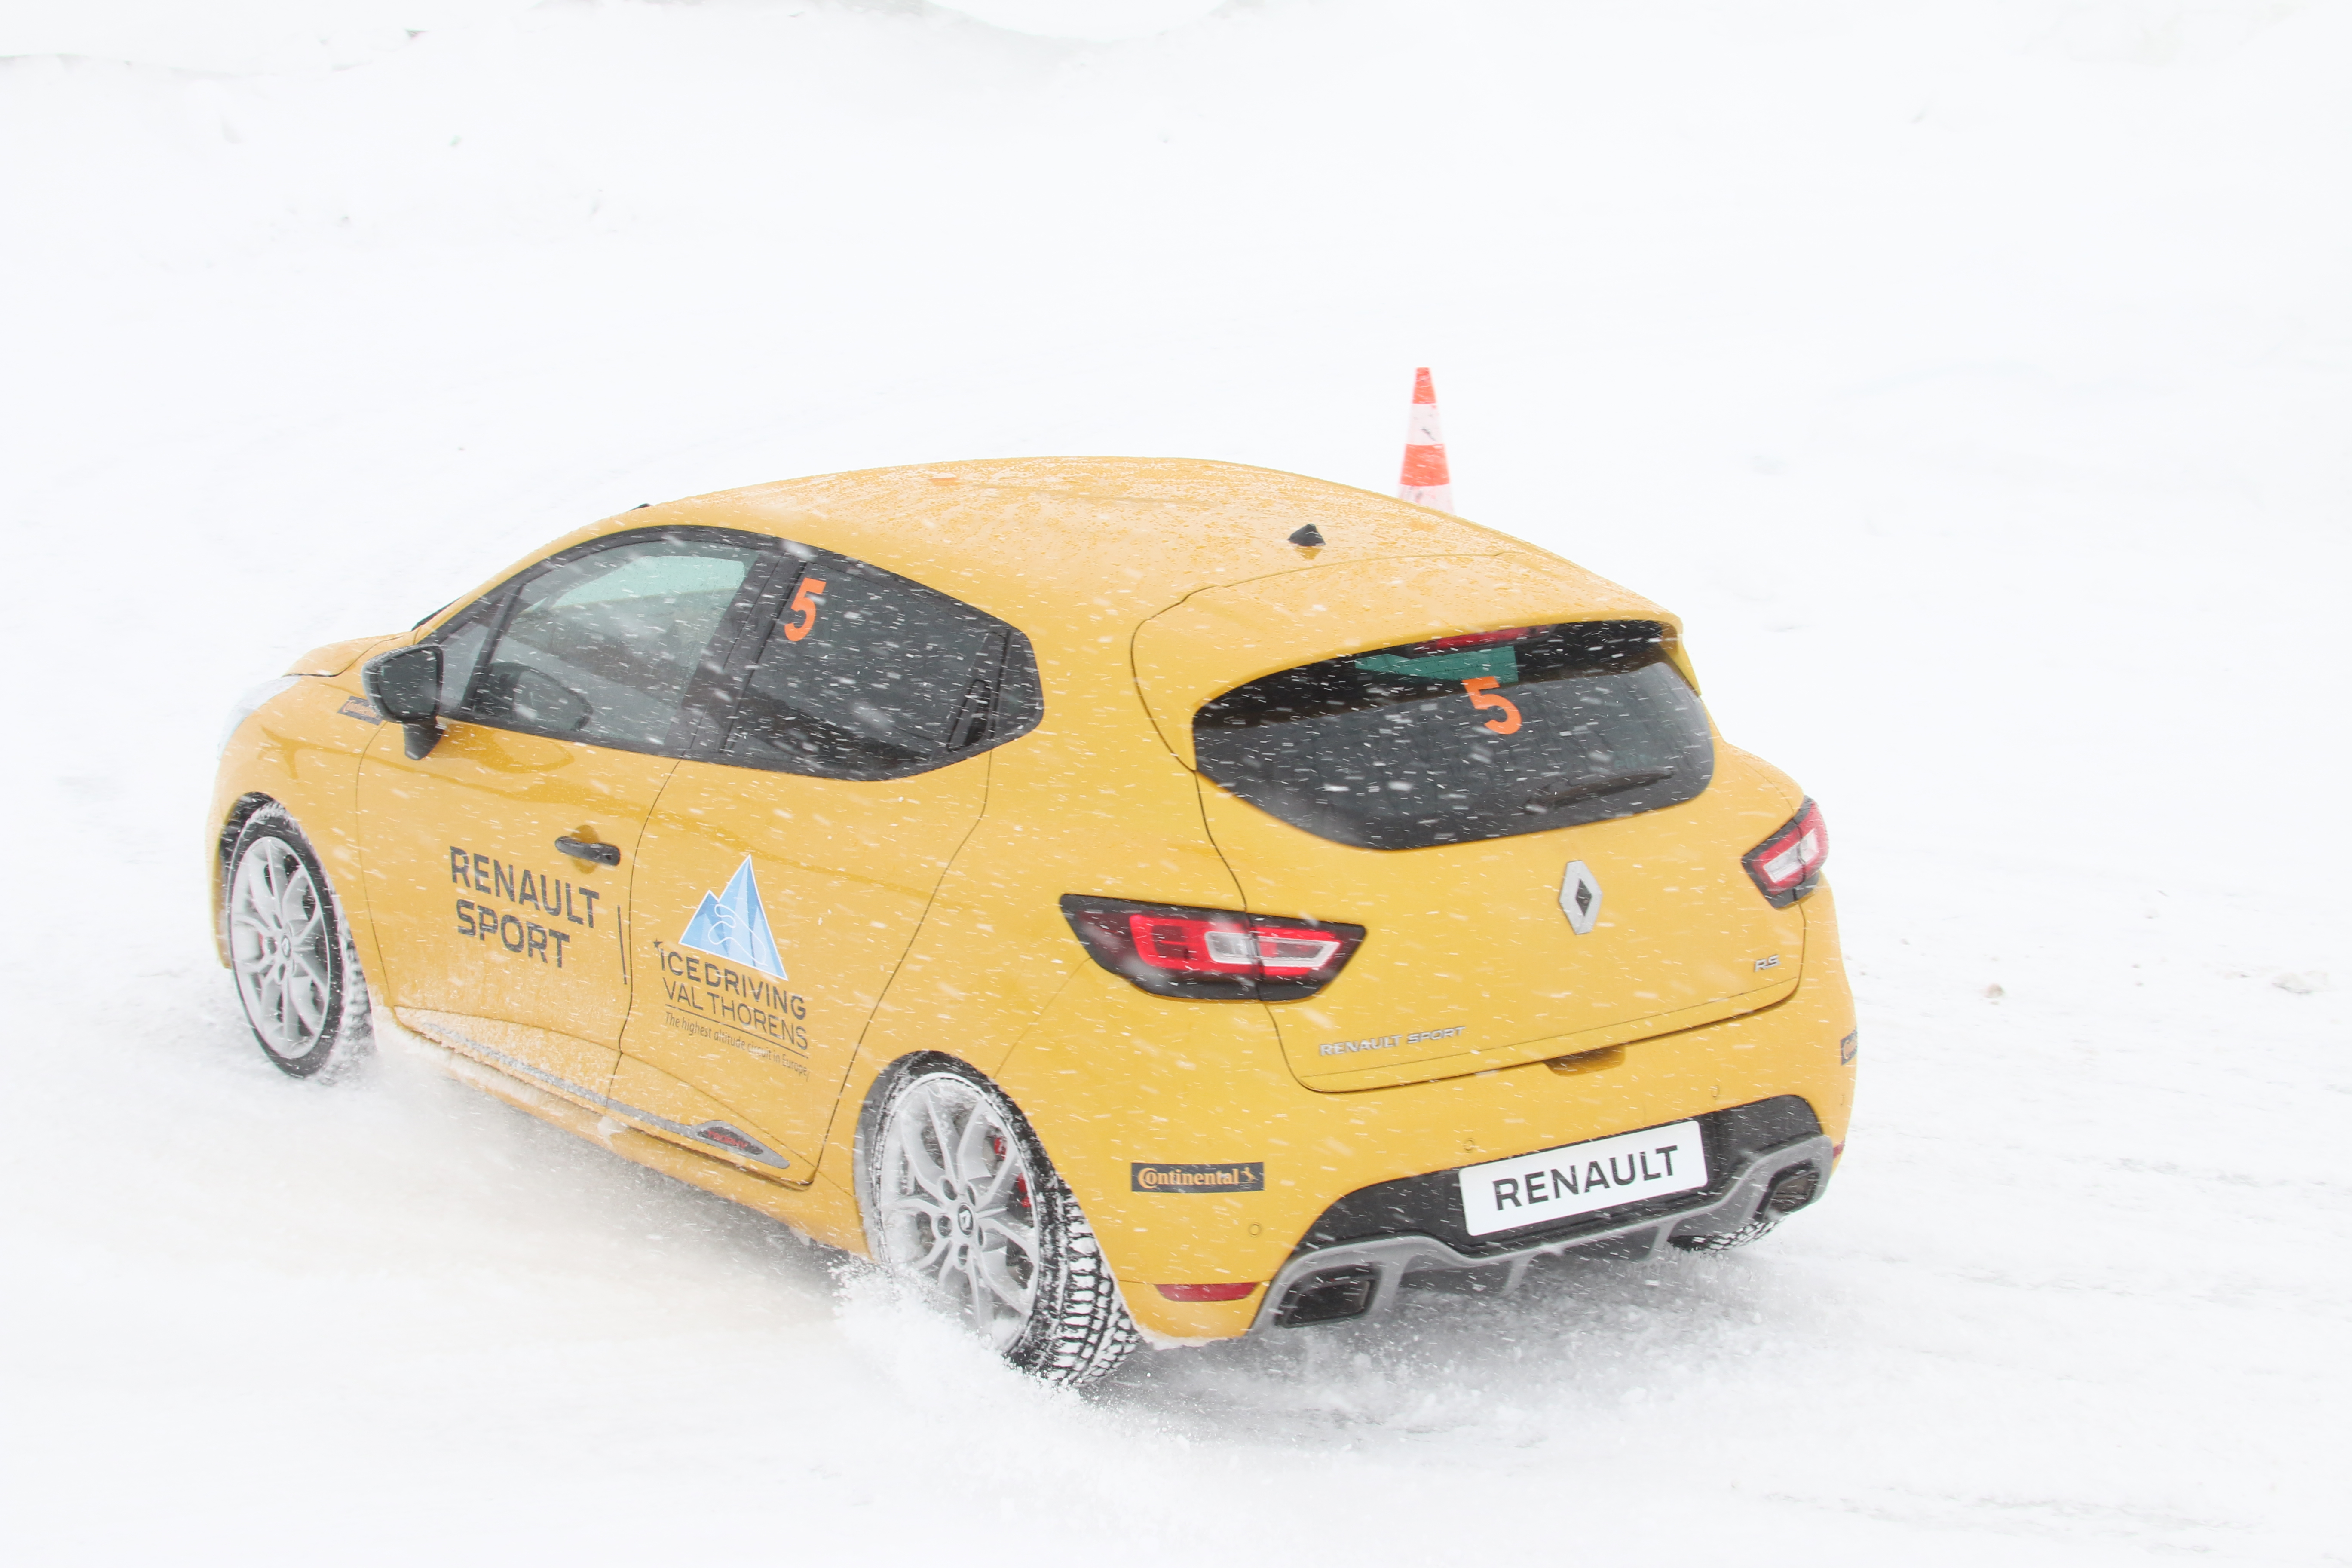 Renault Sport Ice Driving